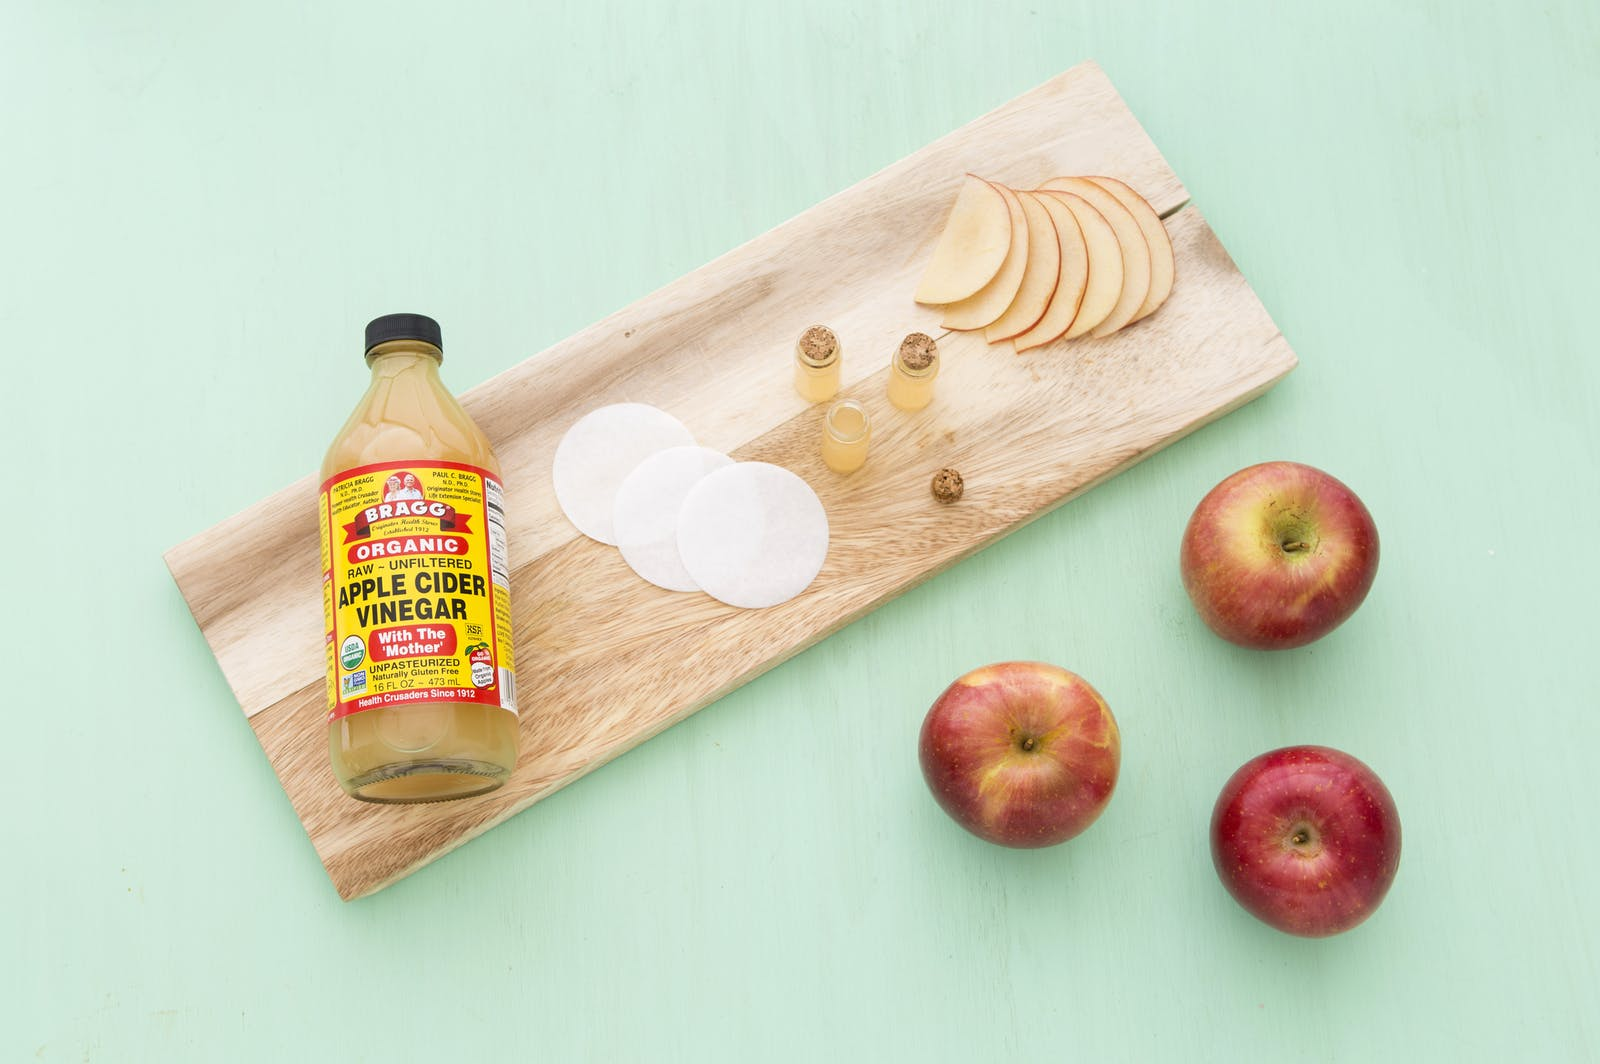 Beauty_Beth_Apple_Cider_Vinegar_01.jpg